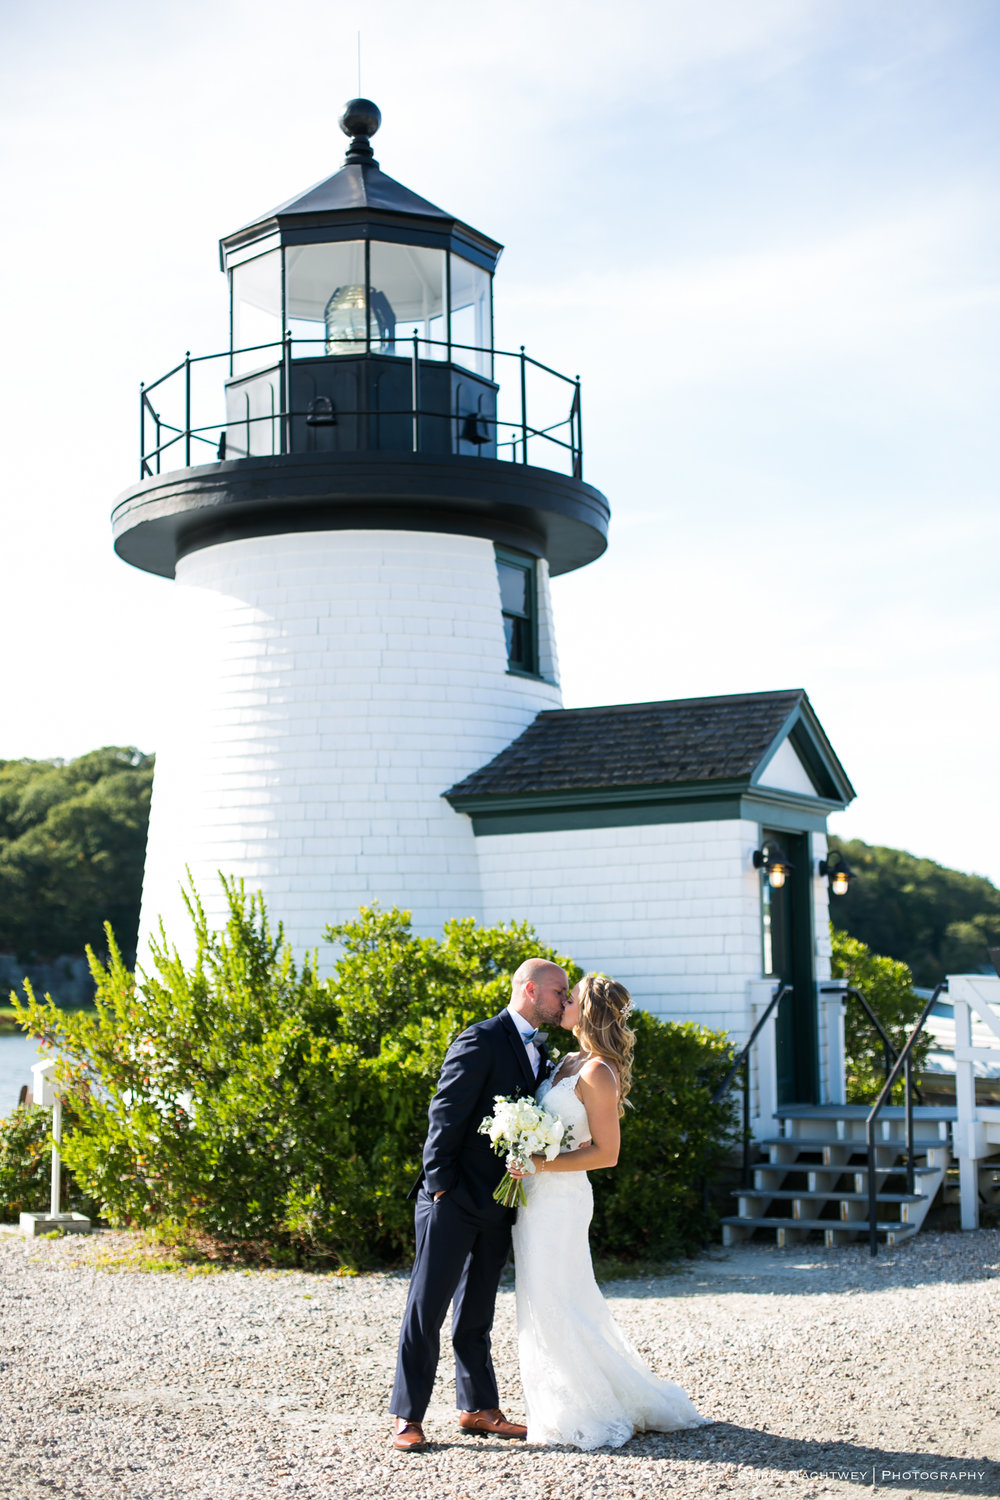 mystic-ct-artistic-wedding-photographers-chris-nachtwey-tany-mike-2017-16.jpg